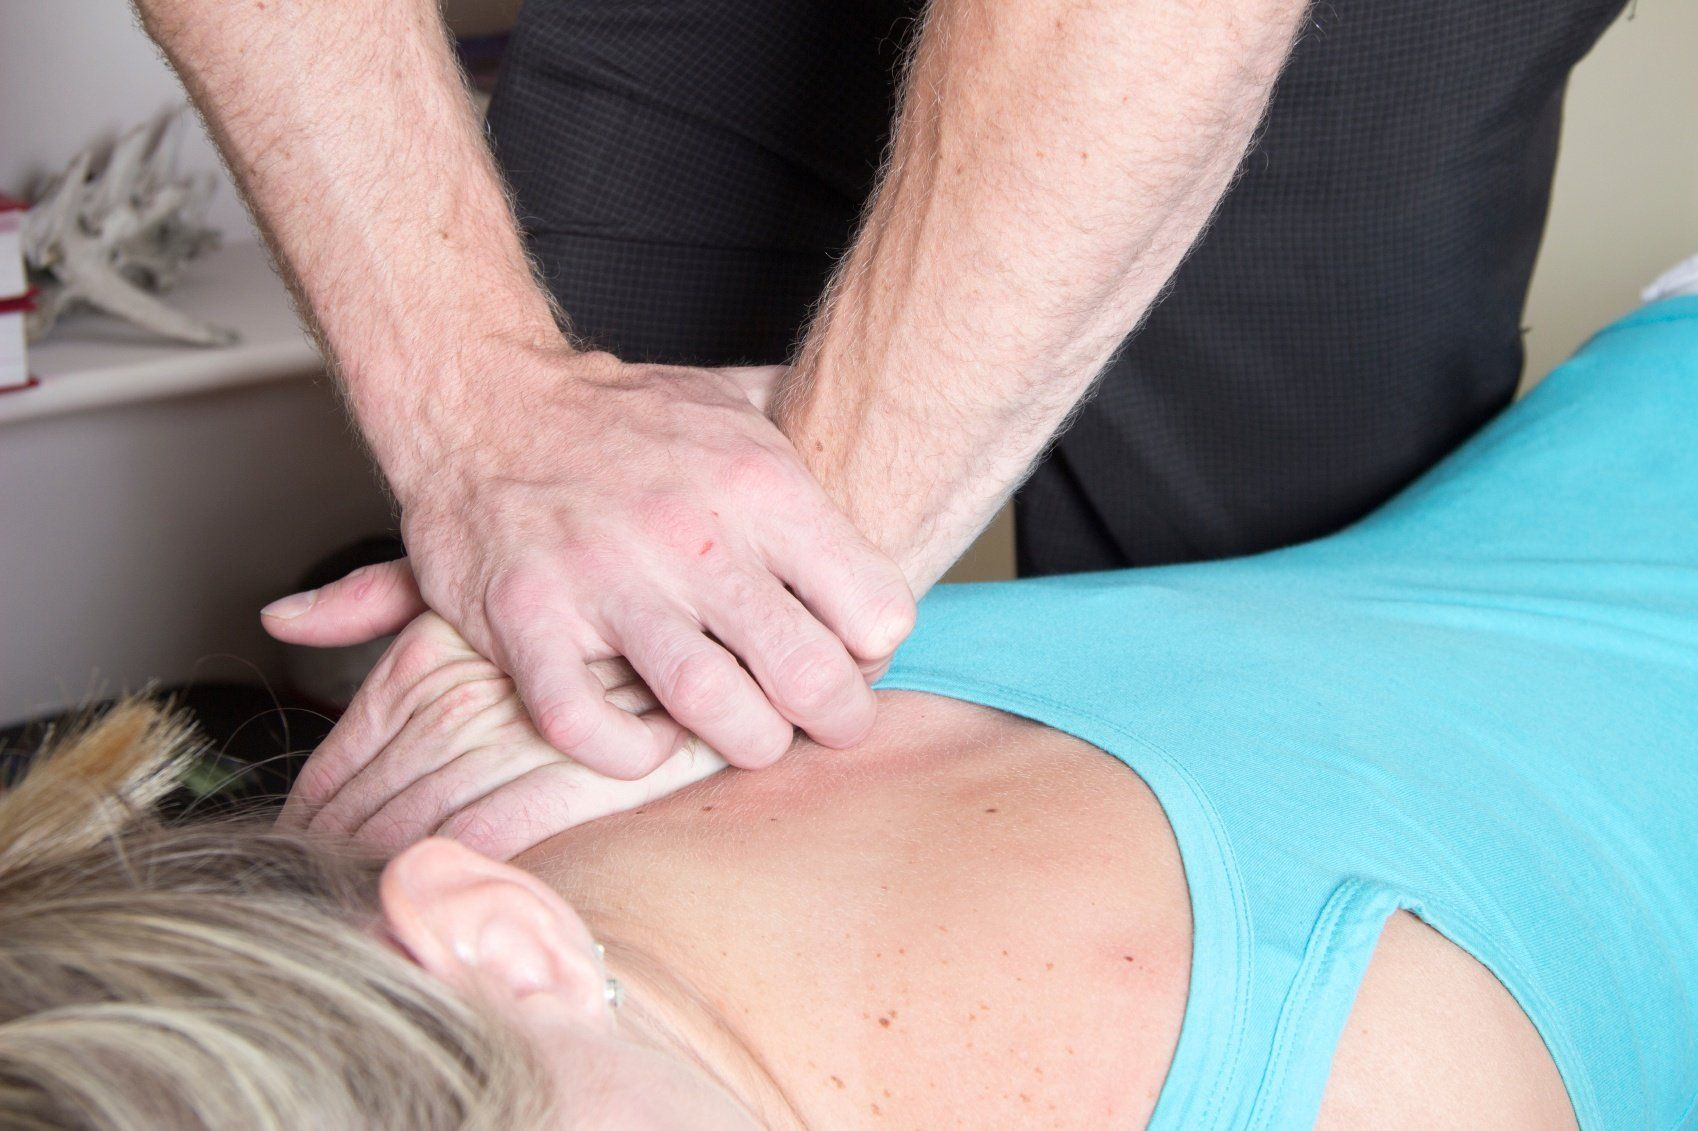 Top Chiropractor in McDonough, Georgia treating a patient with rib pain